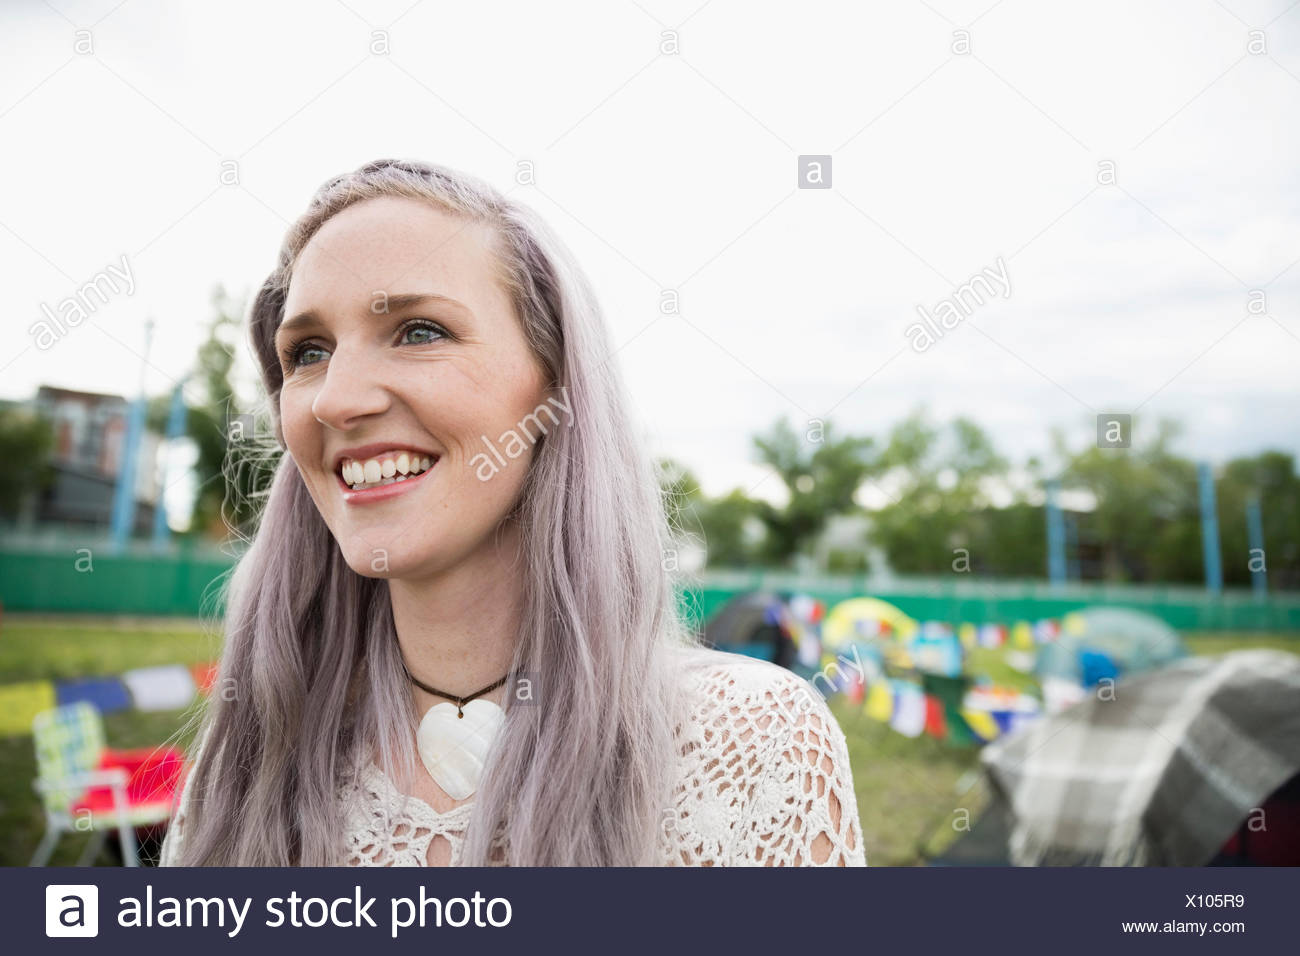 Portrait smiling young woman with chalk dyed purple hair looking away at summer music festival campsite - Stock Image